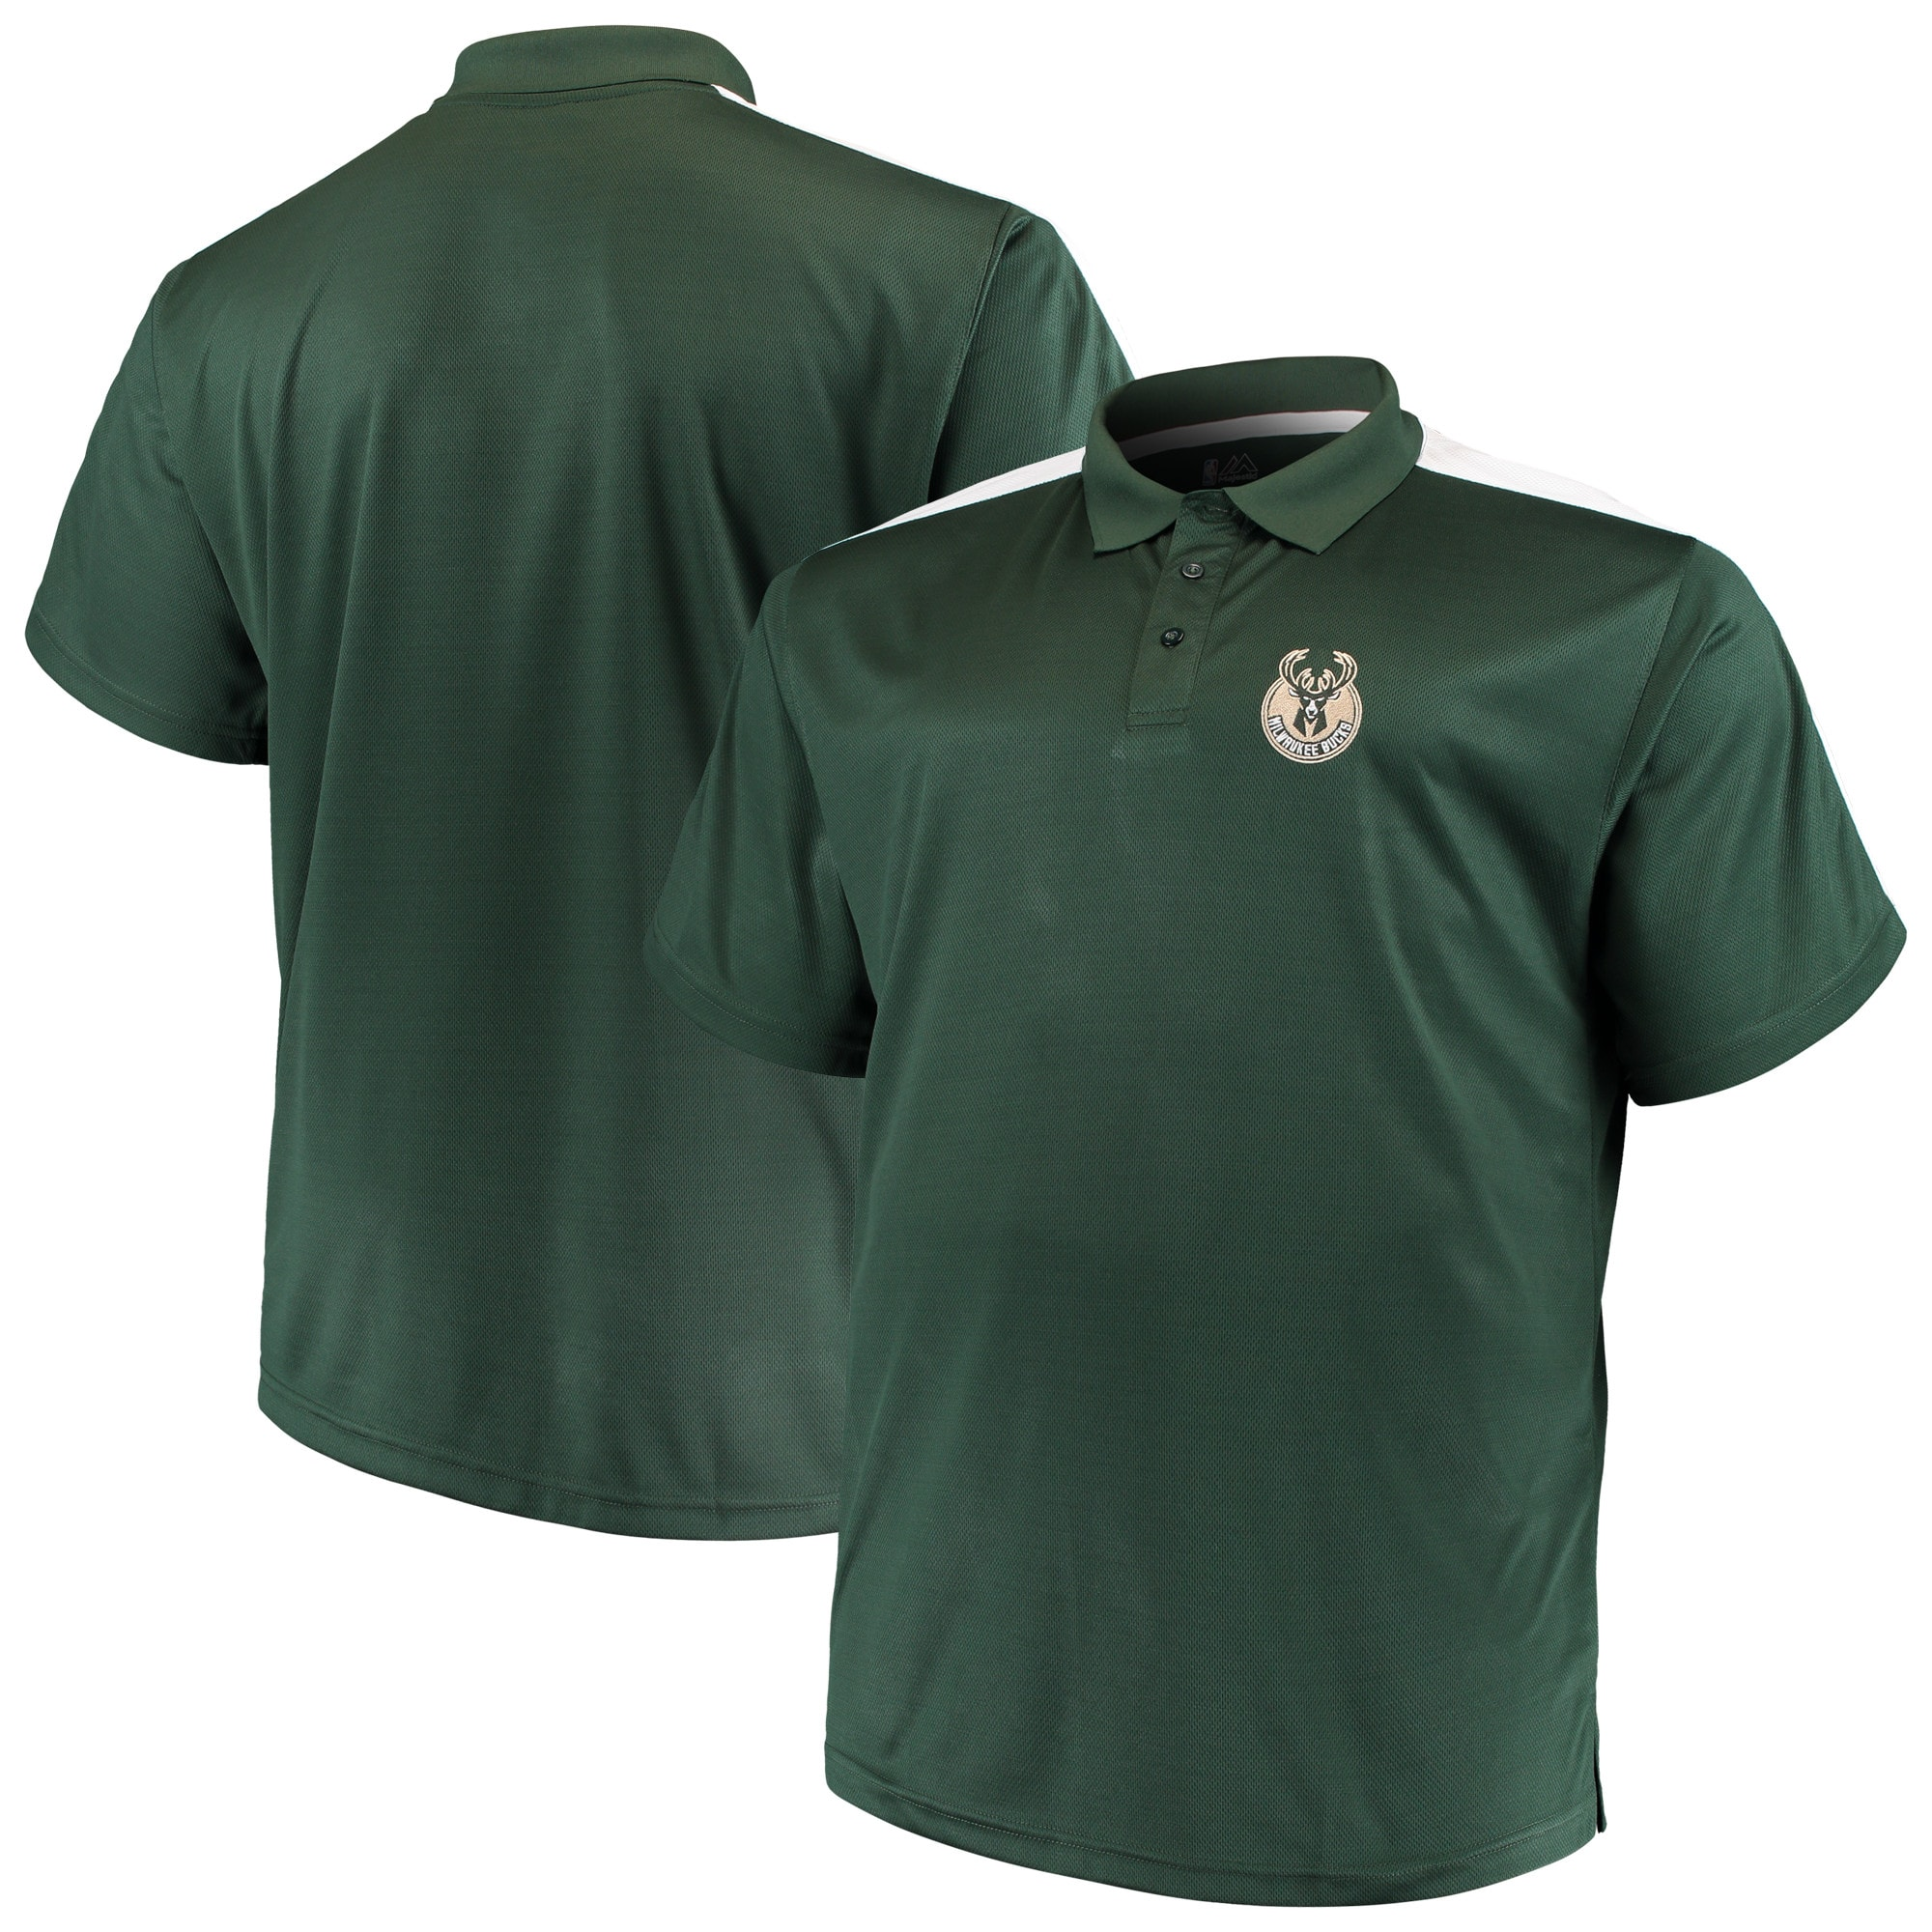 Milwaukee Bucks Majestic Big & Tall Birdseye Polo - Hunter Green/White